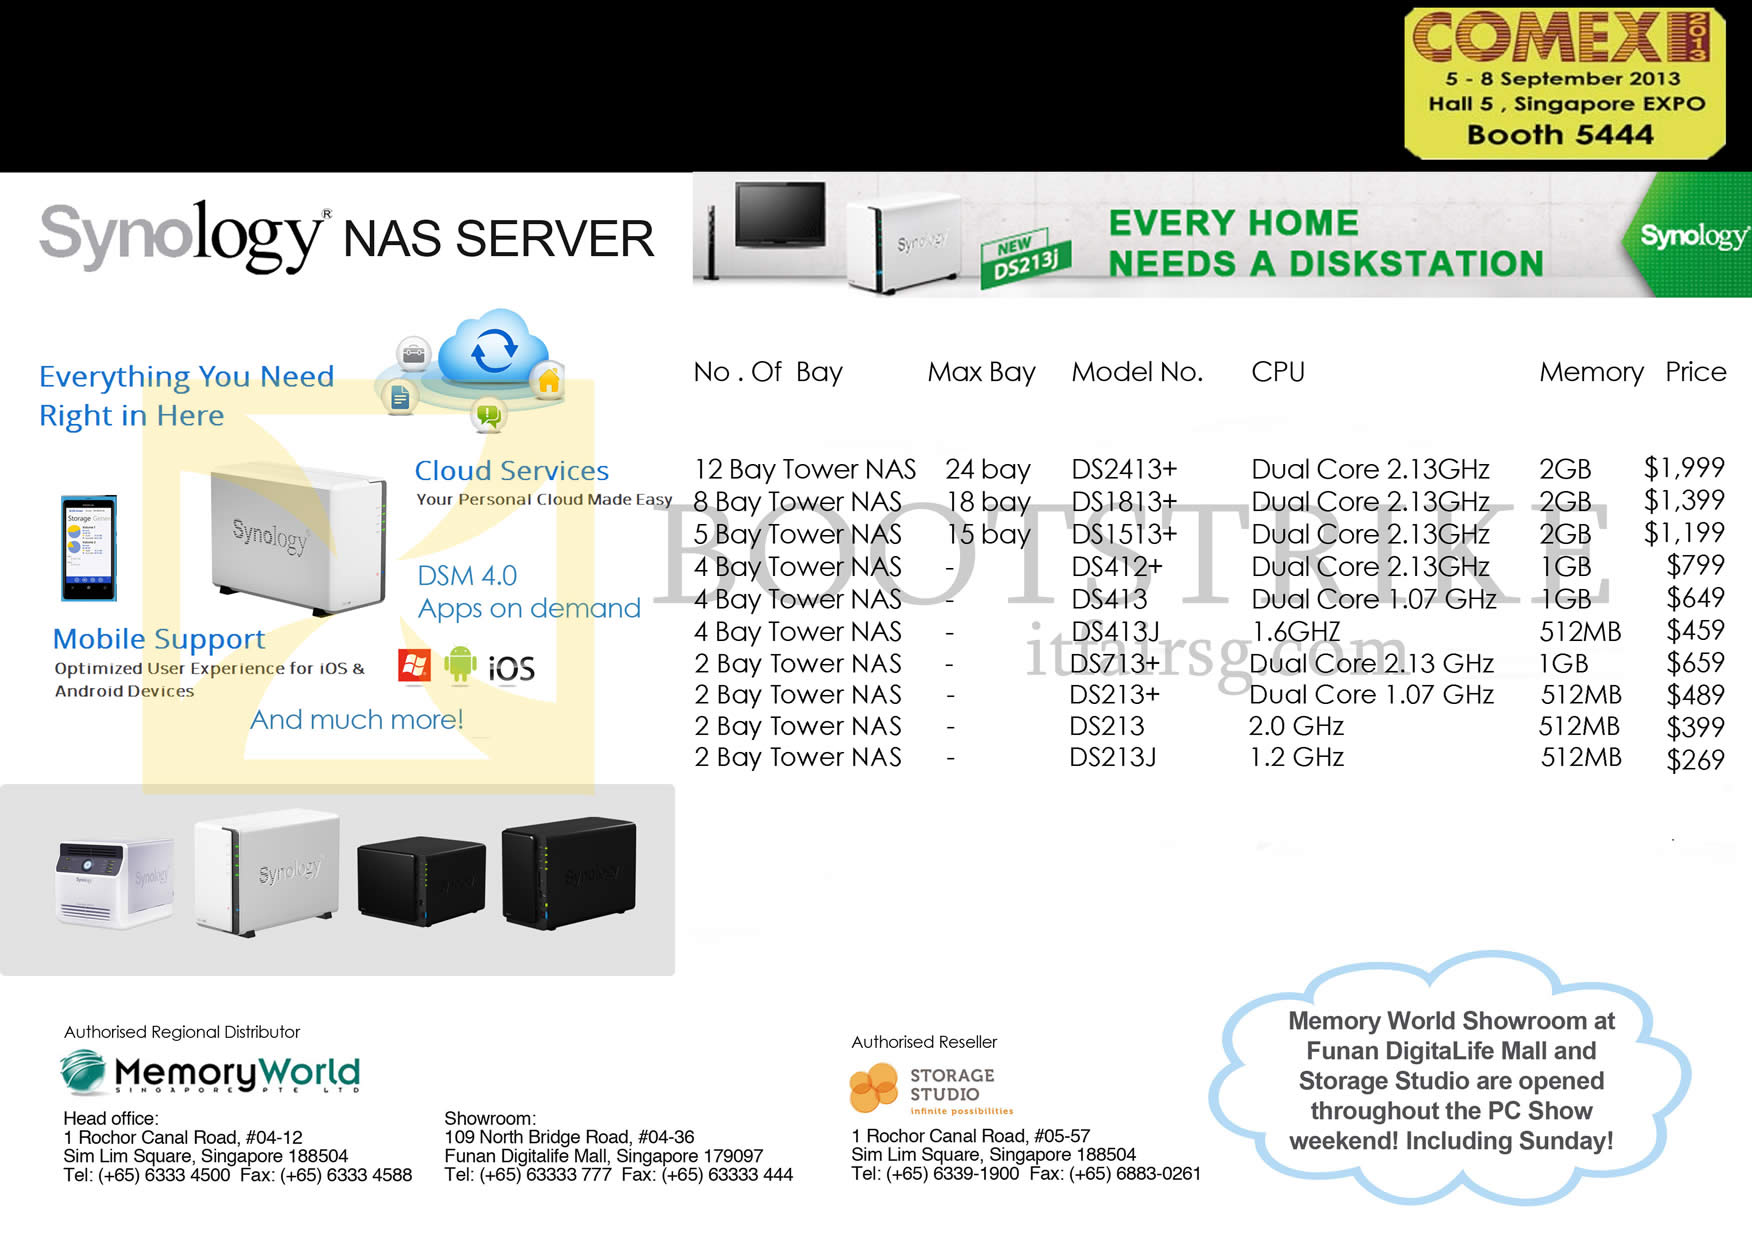 COMEX 2013 price list image brochure of Memory World Synology NAS Server DS2413, DS1813, DS1513, DS412, DS413, DS413J, DS213